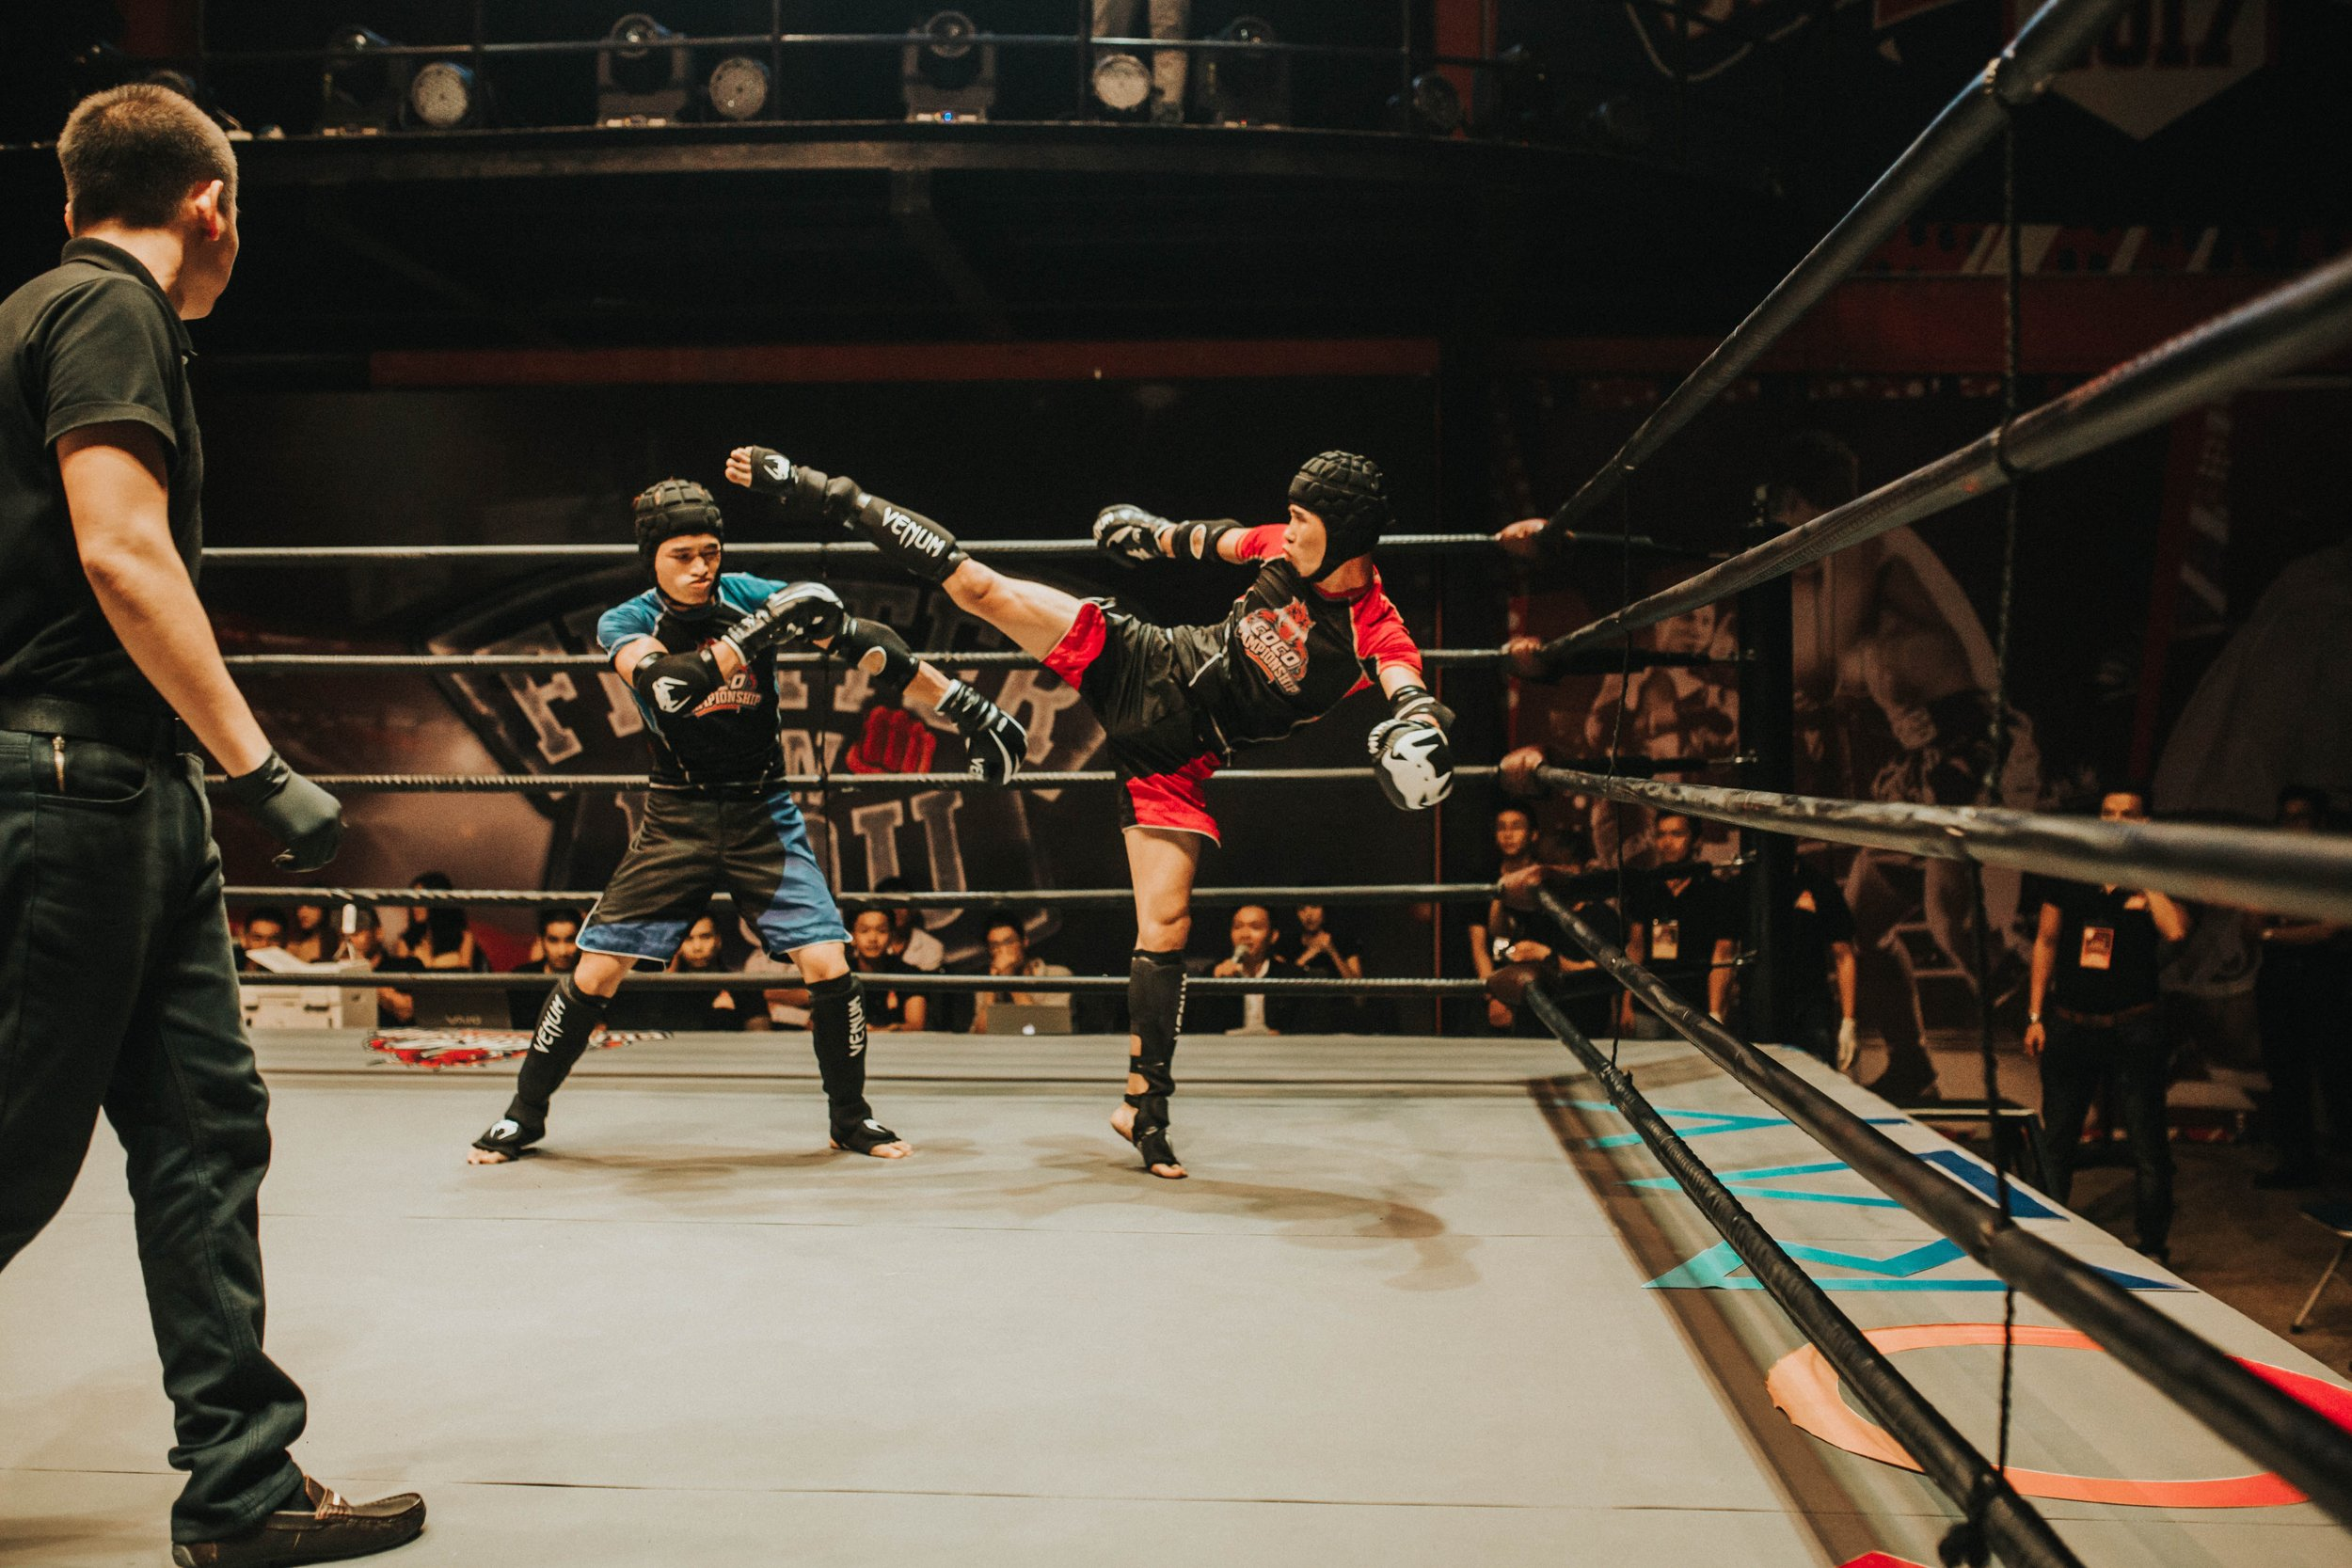 Martial Arts, including MMA, are a passion of Adele's.